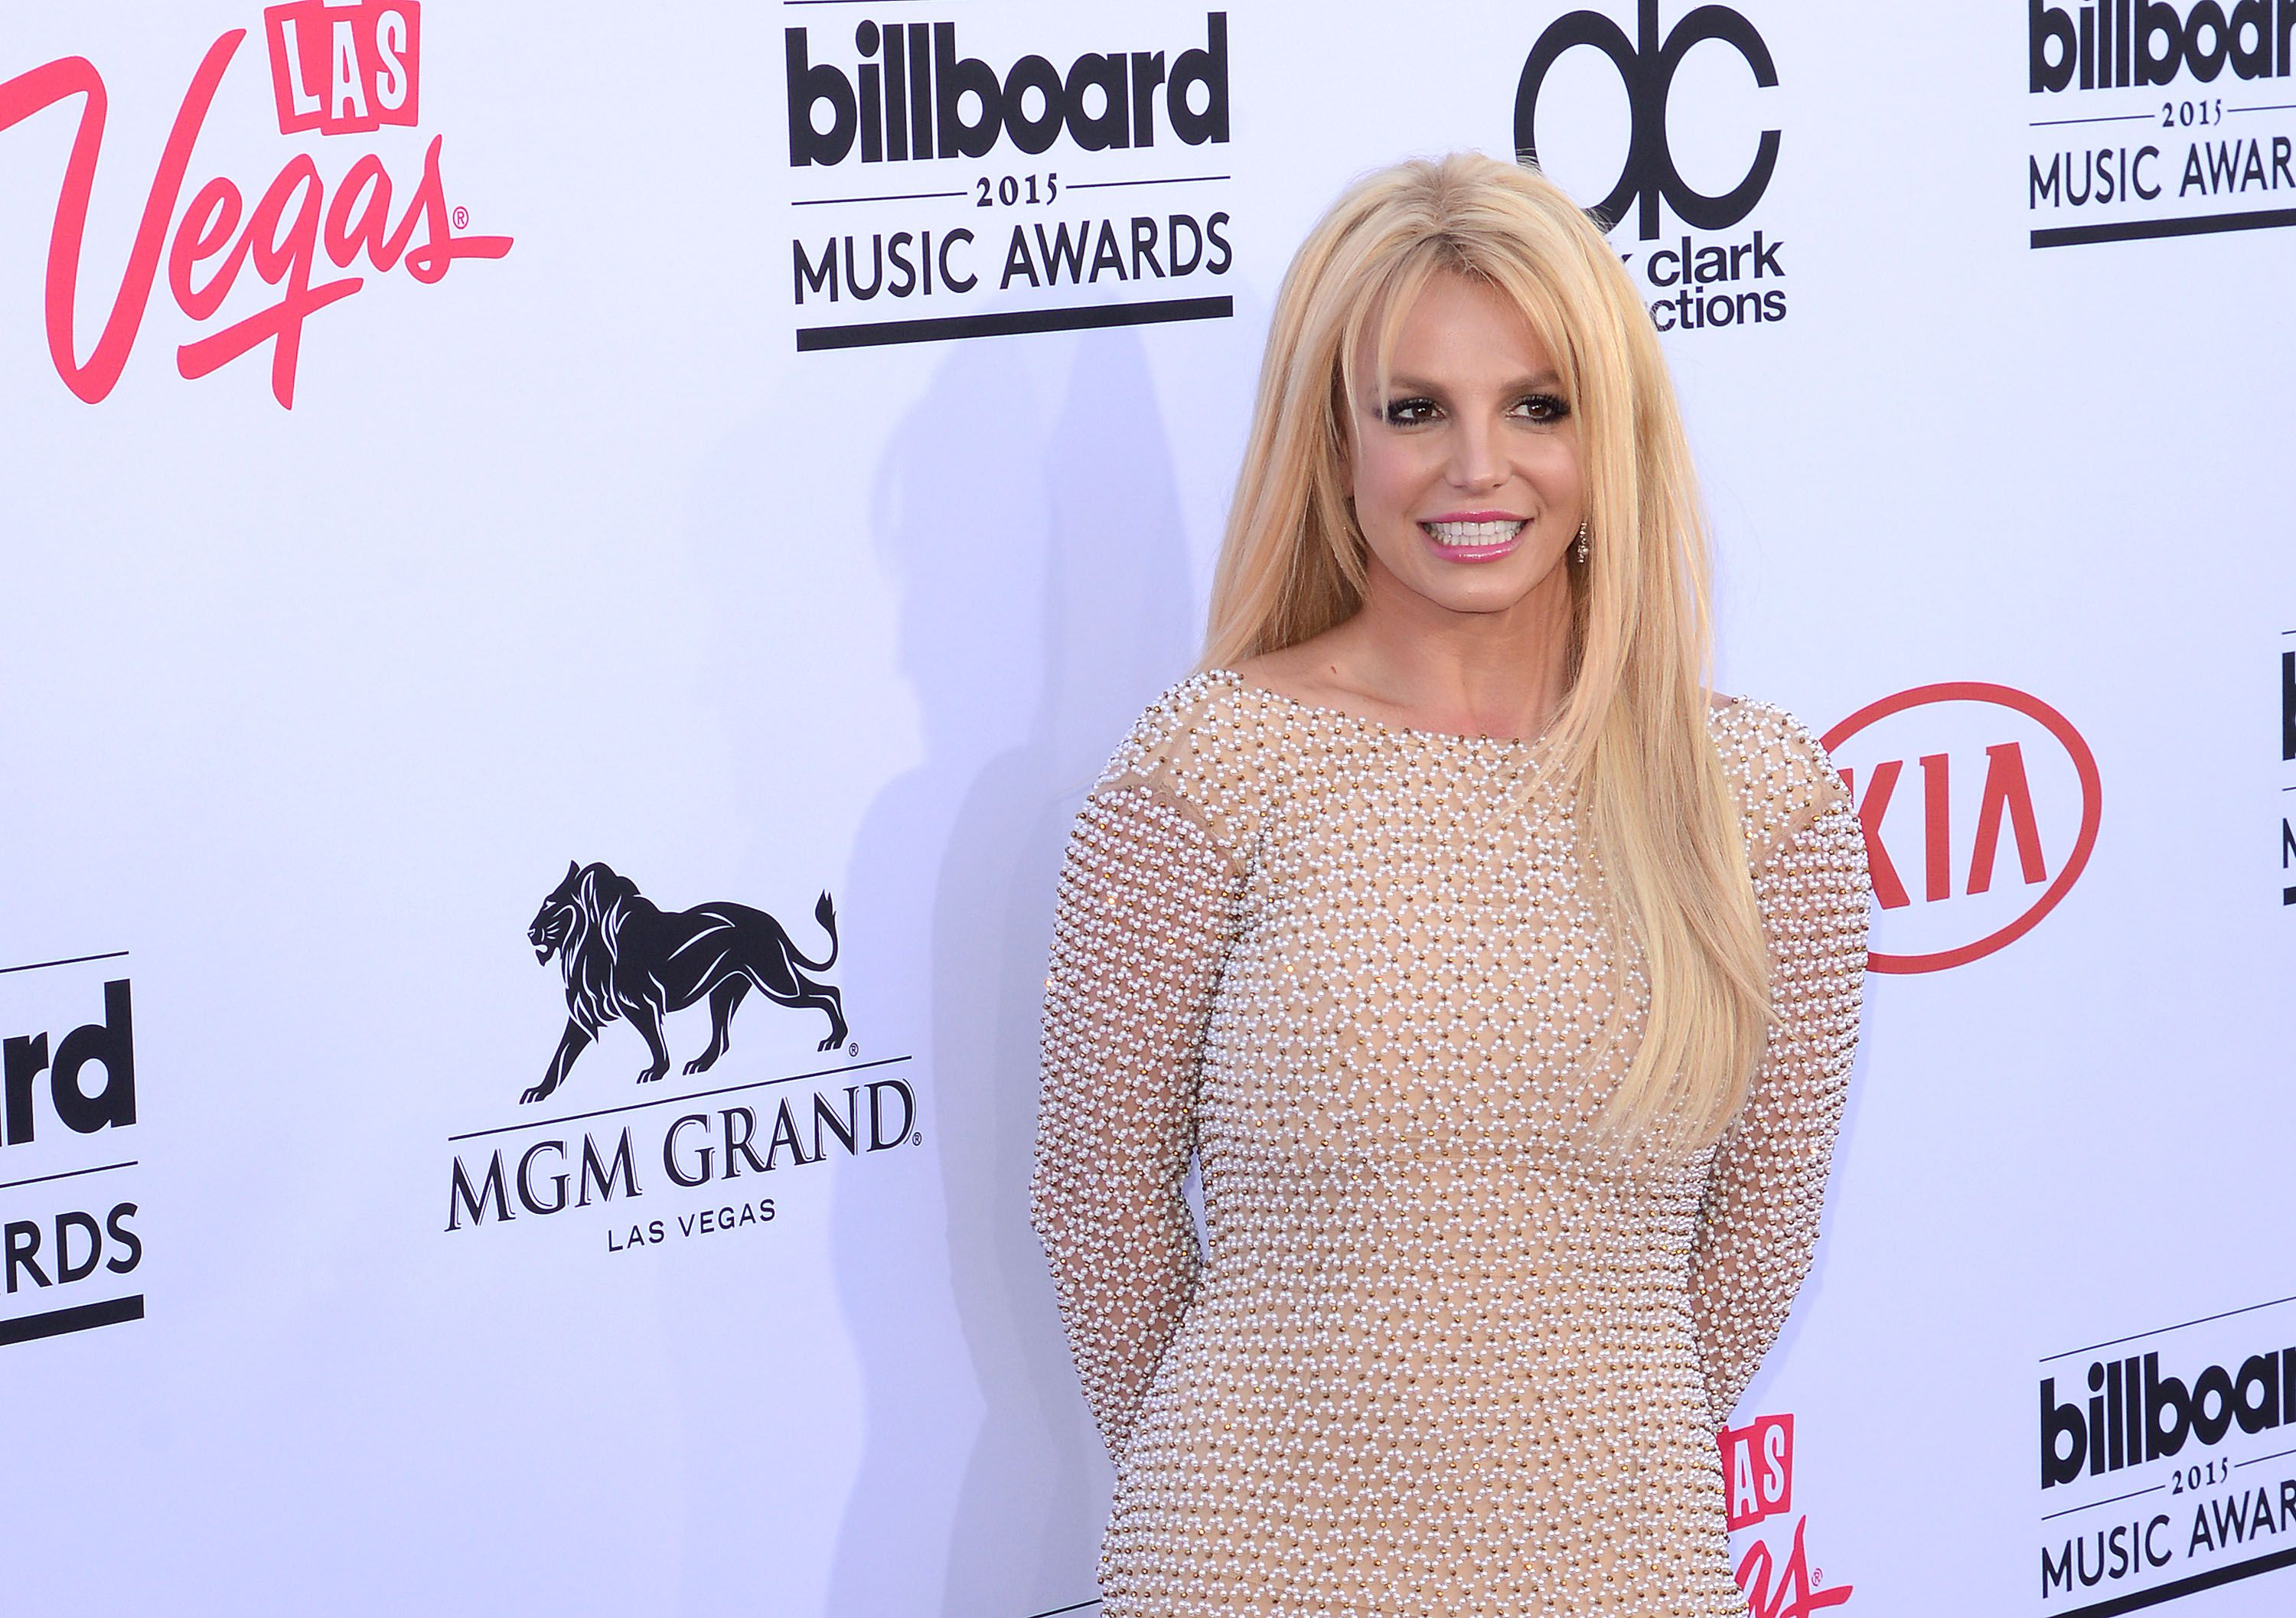 Singer Britney Spears at The 2015 Billboard Music Awards on May 17, 2015.   Photo: Getty Images